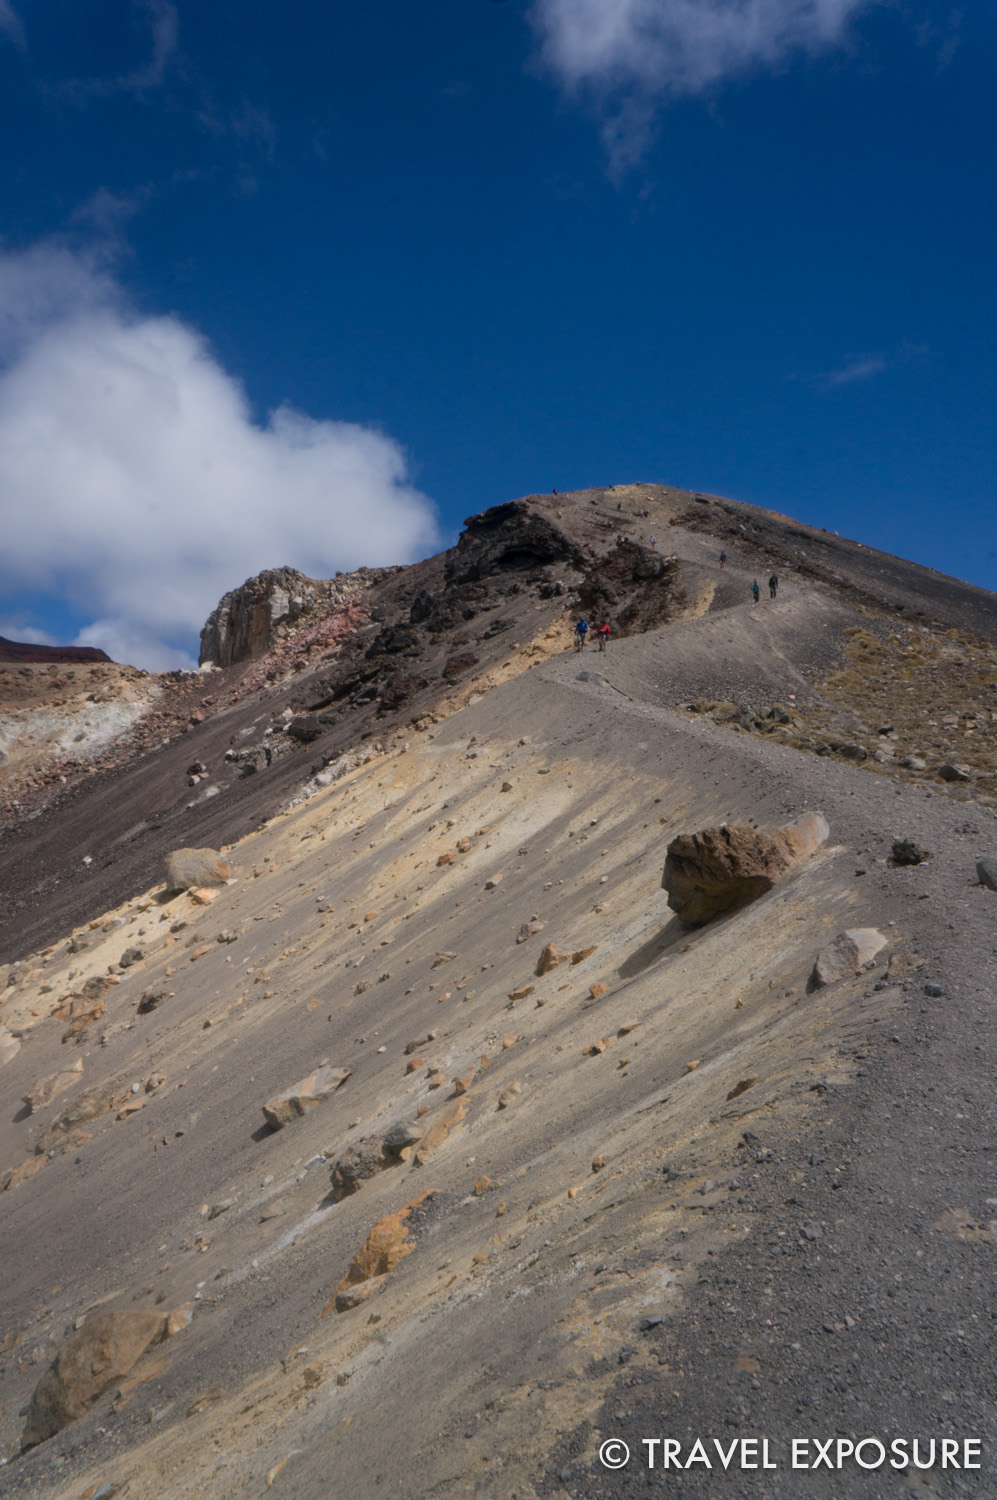 Tongariro Alpine Crossing Hike - can't believe we walked down this!